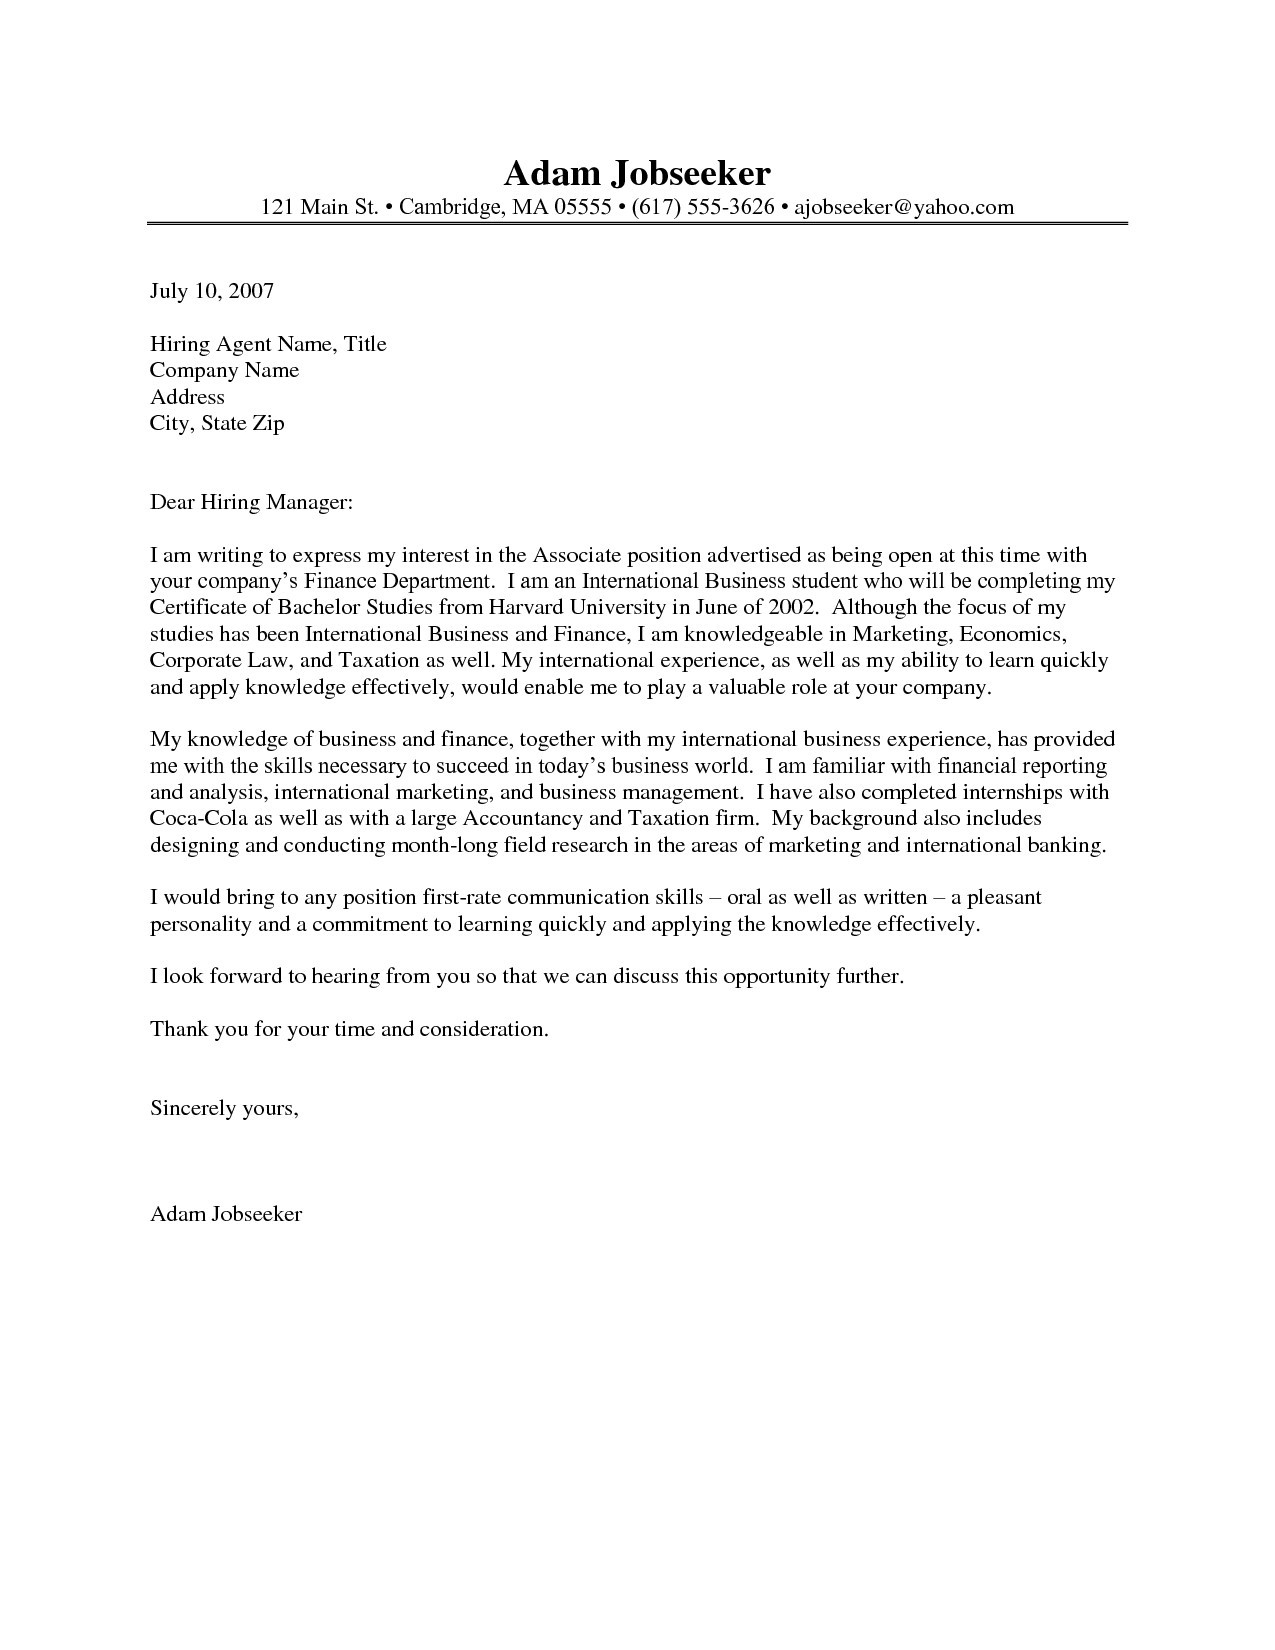 Writing A Cover Letter Template - Cover Letter Examples for Internship Fresh Cover Letter Examples for